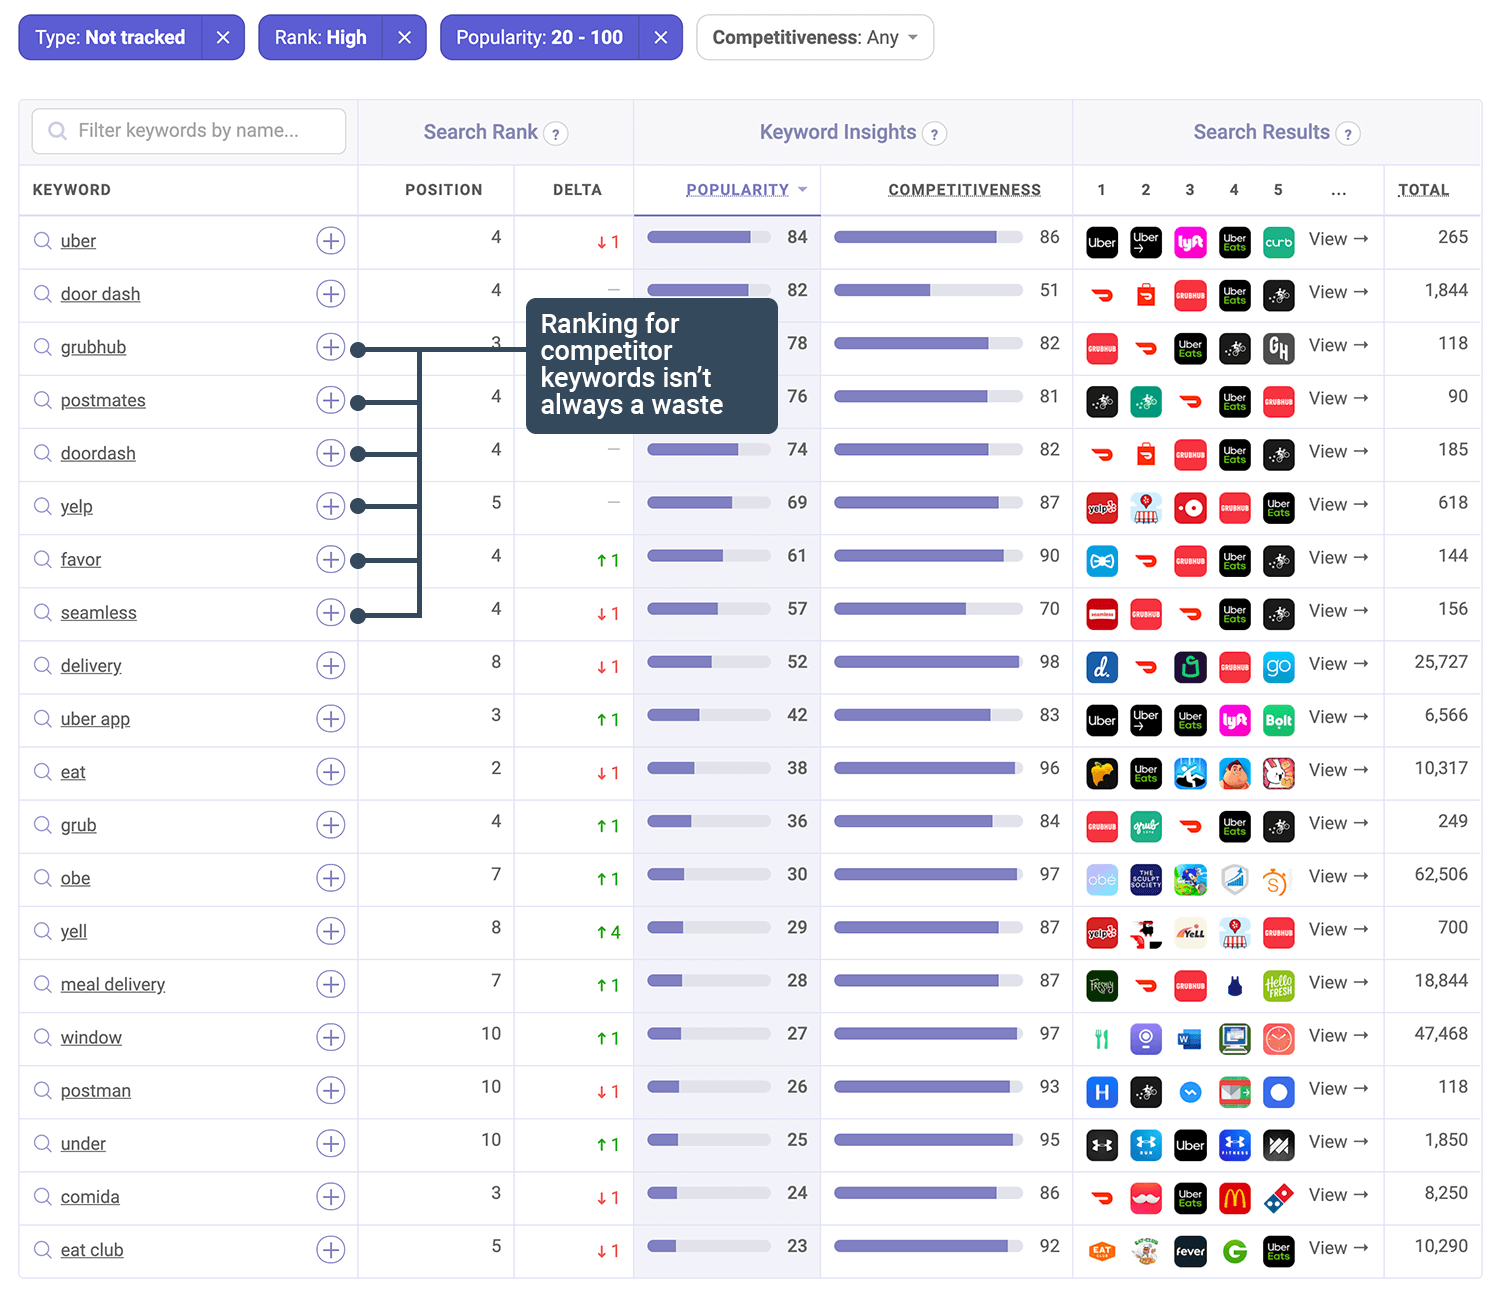 Uber Eats is ranked in many popular keywords on the App Store | Tool for ASO ranks